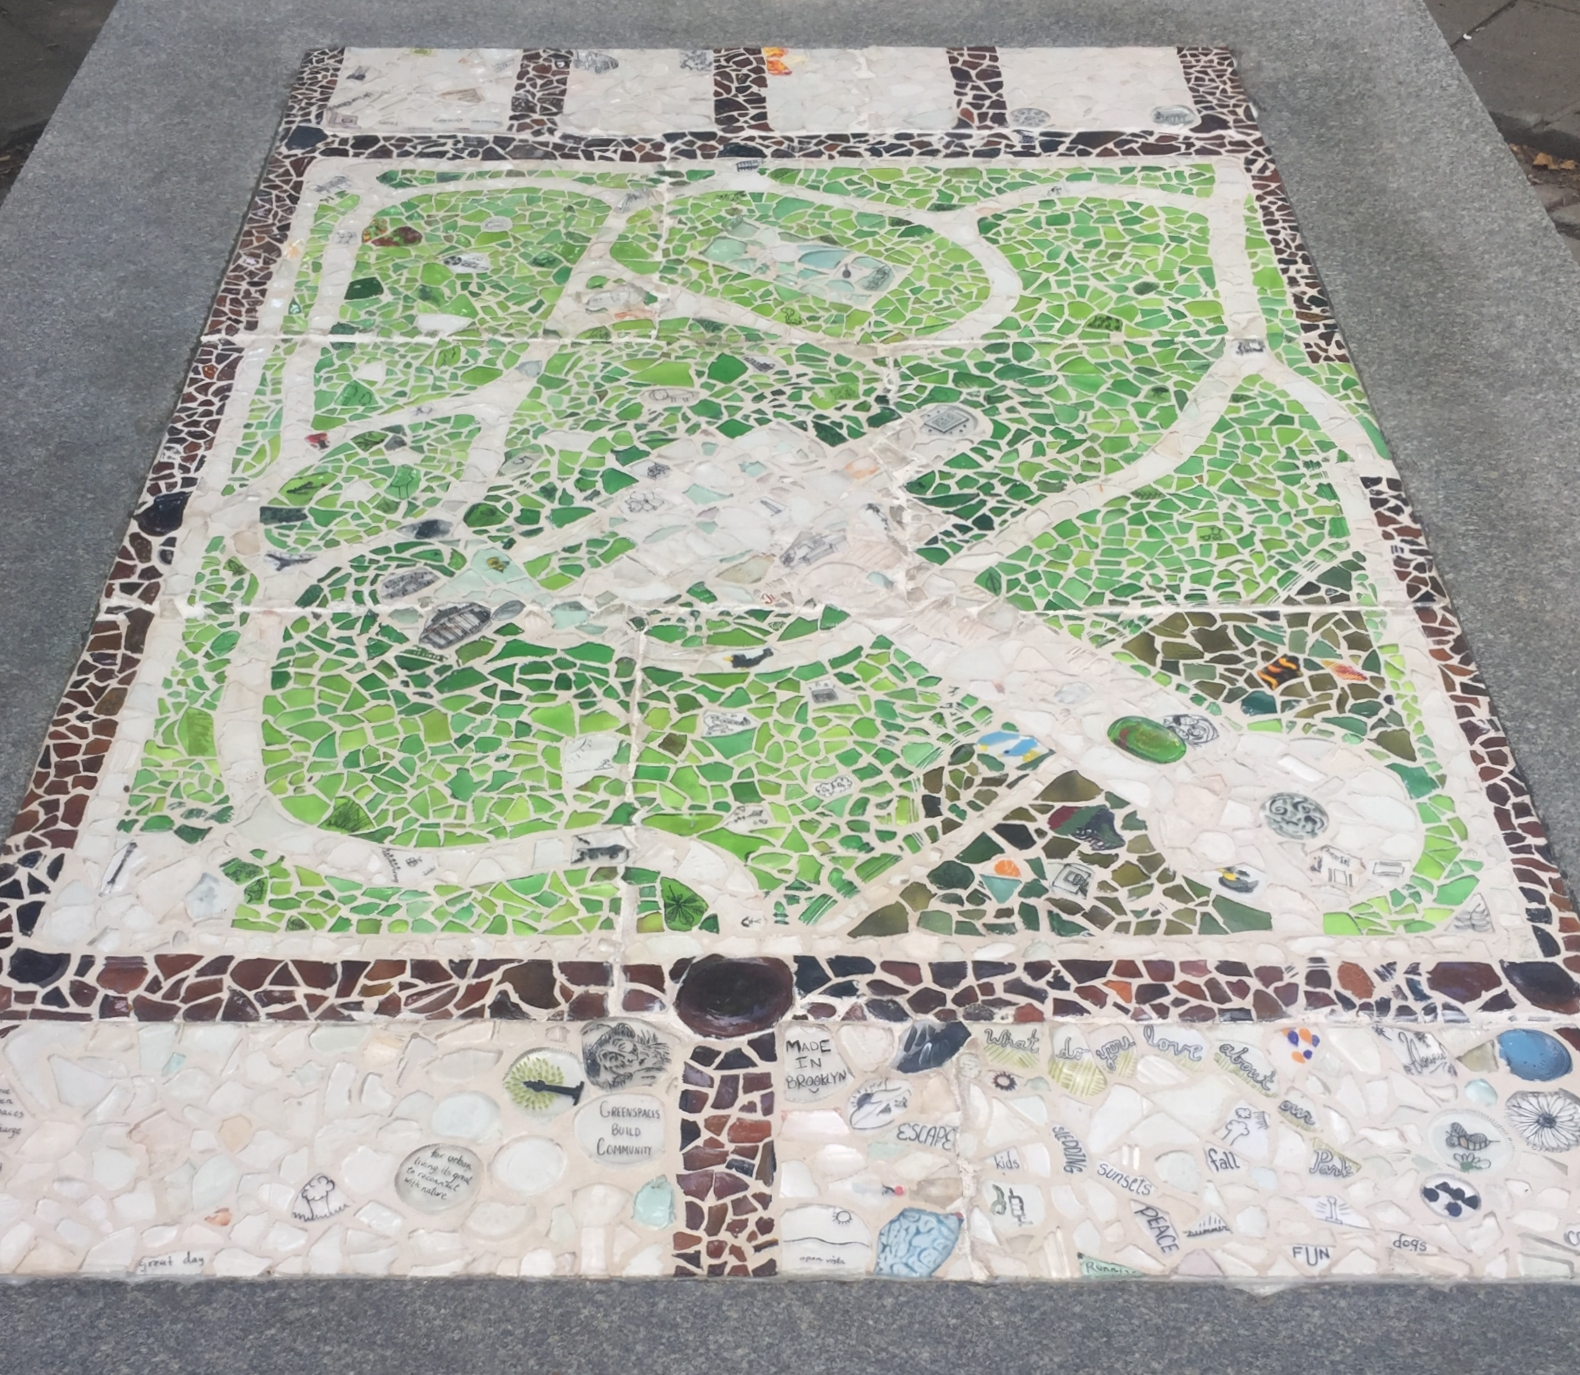 """Amanda Patenaude's """"One Map of Many Moments"""" glass mosaic, installed through May 2018 in the west wing of the Monument Plaza,turns a long-standing park maintenance challenge into an opportunity for community engagement and placemaking."""